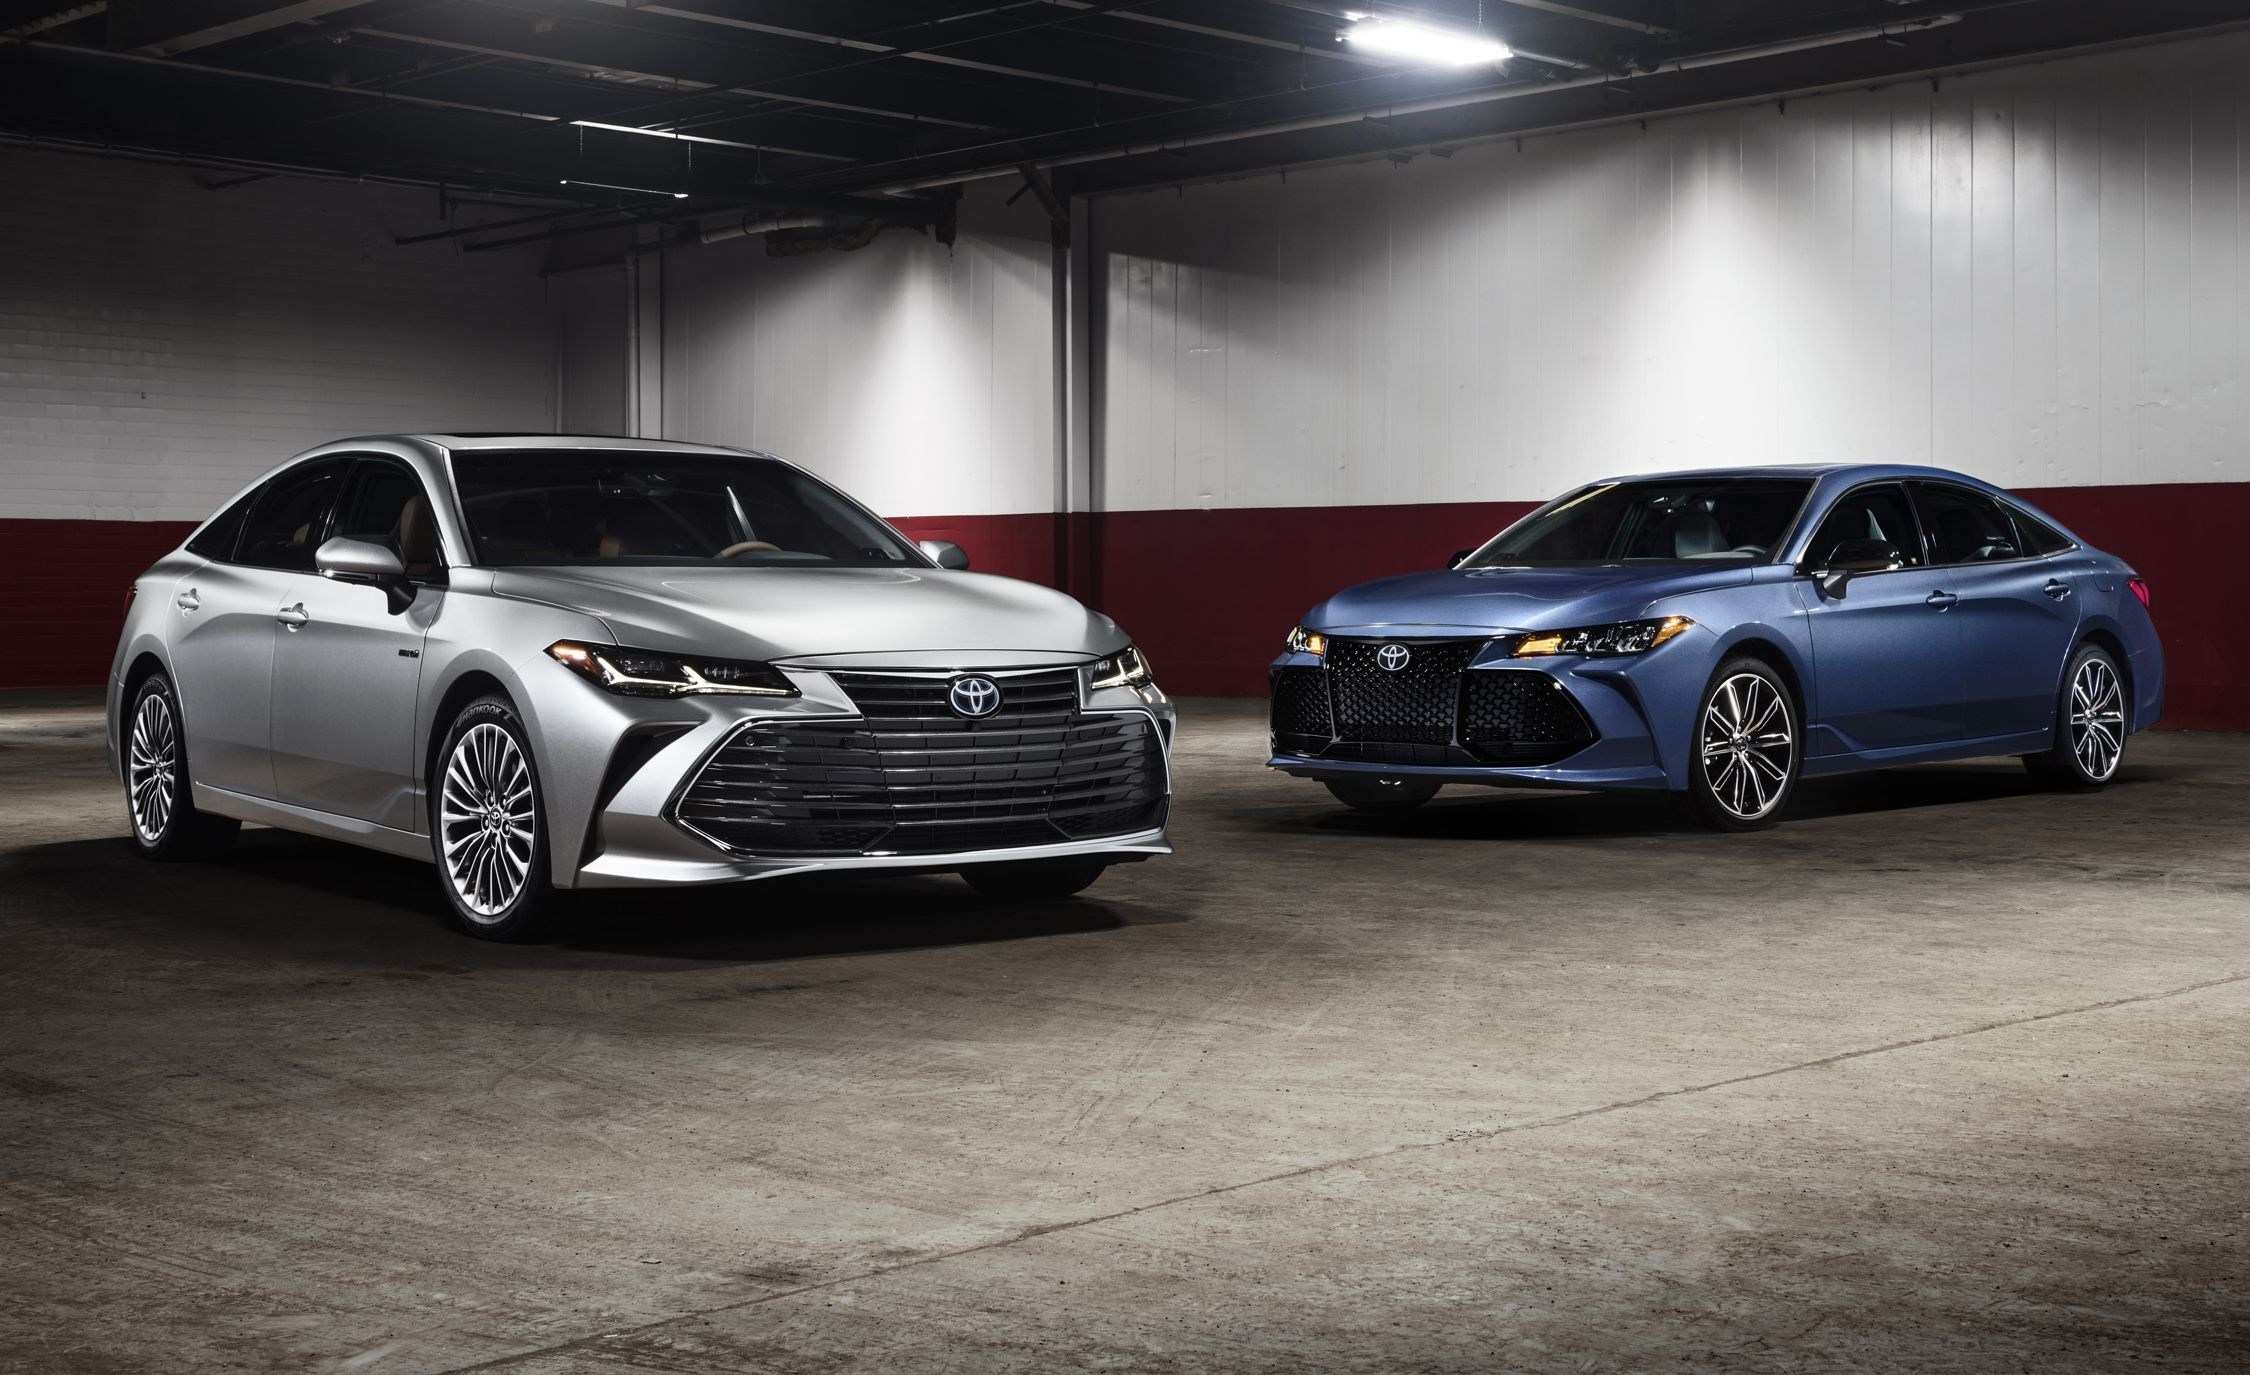 16 New 2020 Toyota Avalon Hybrid Exterior And Interior